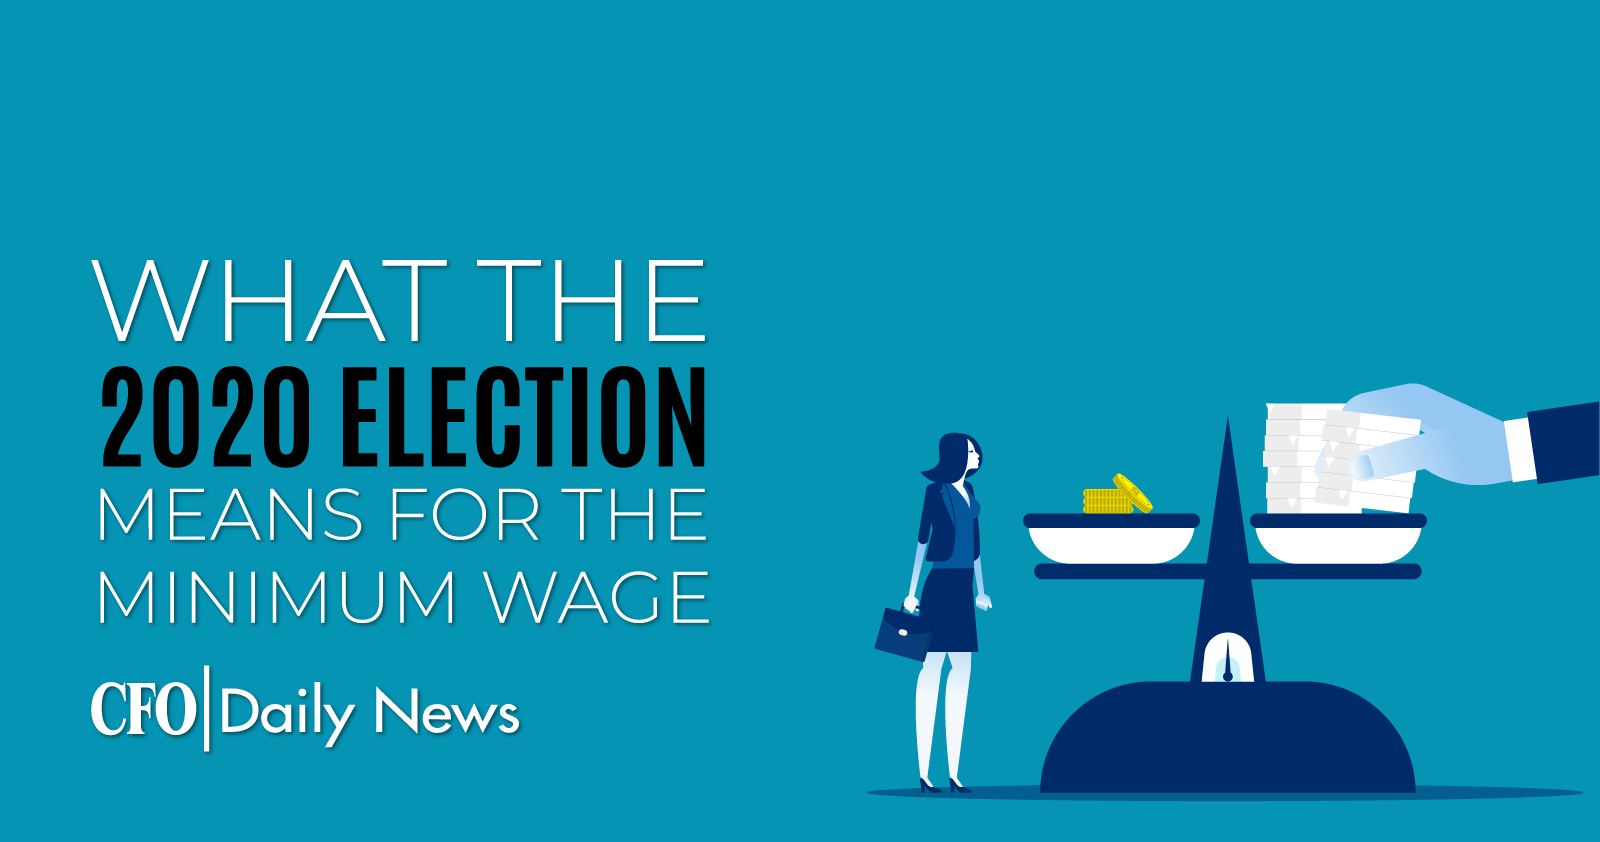 what the 2020 election means for the minimum wage